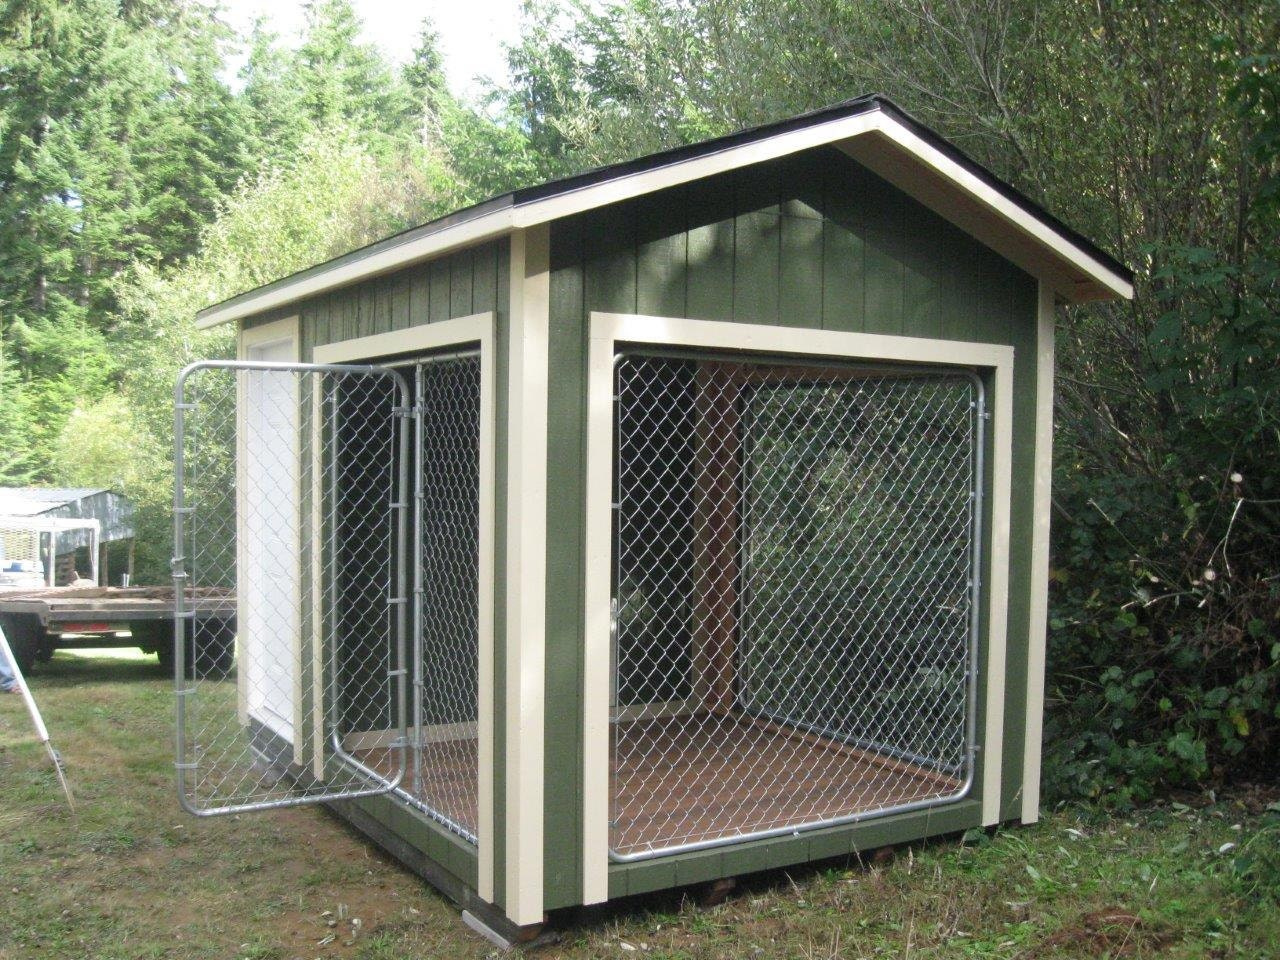 8x12 k9 kennel with 4x8 dog house and 8x8 kennel built to With k9 dog house